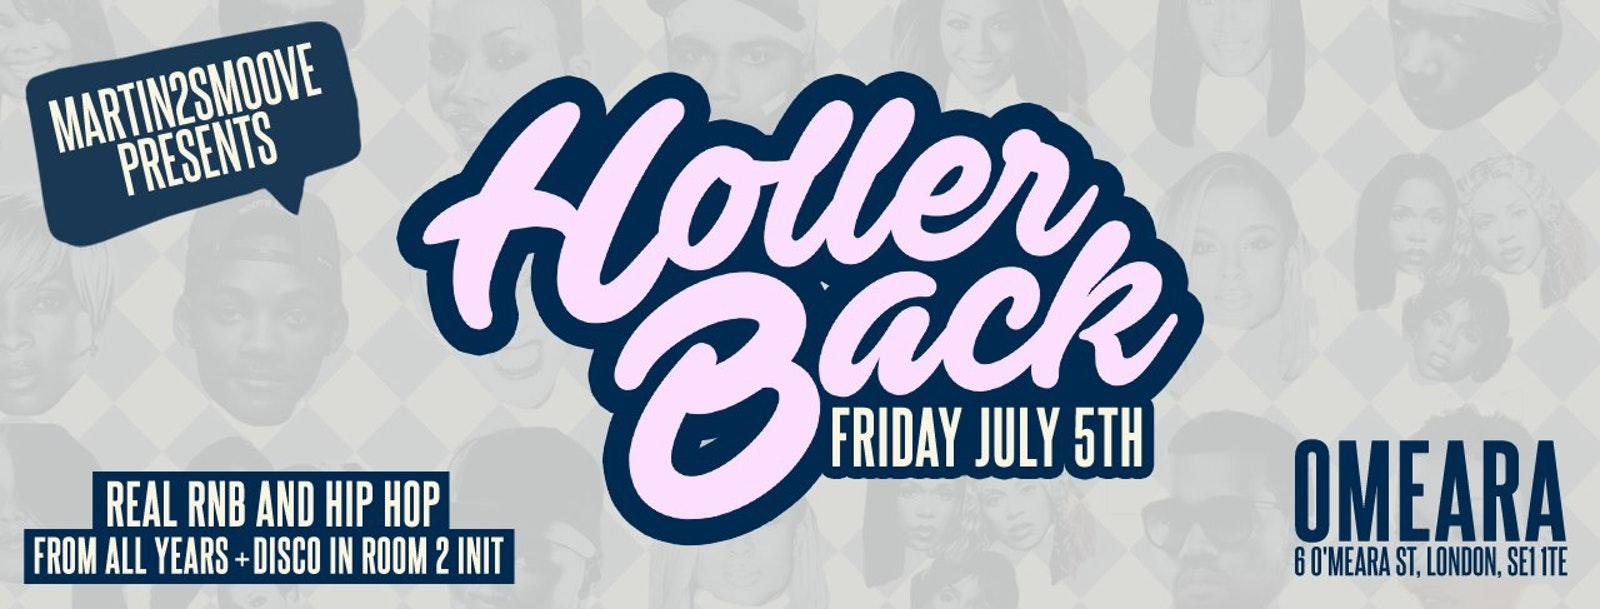 Holler Back – HipHop n R&B at Omeara London | Friday July 5th 2019